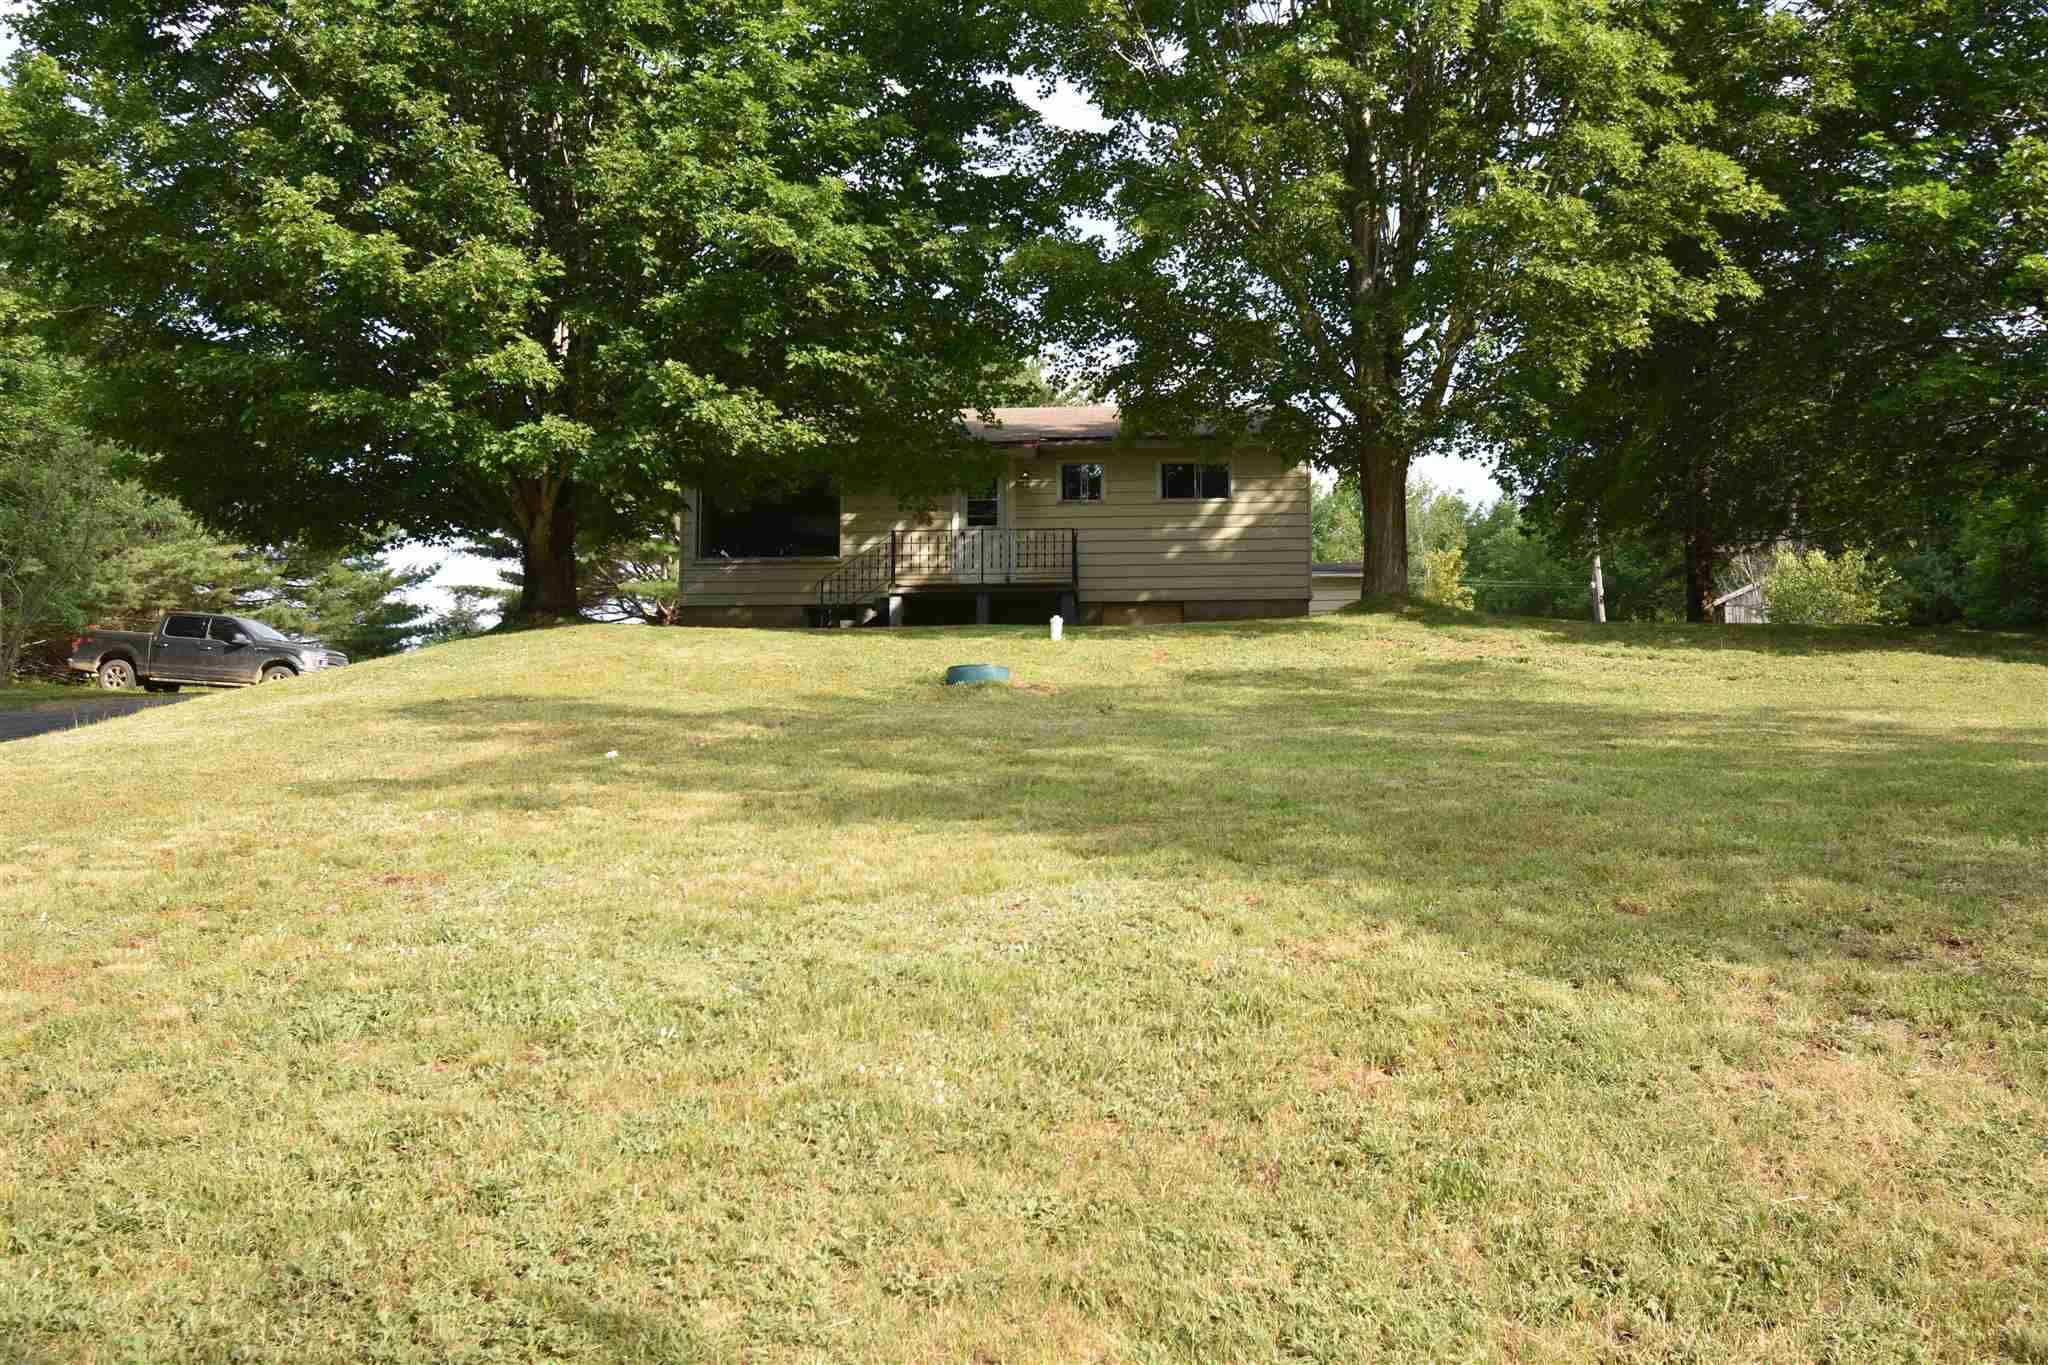 Main Photo: 2149 CLEMENTSVALE Road in Bear River: 400-Annapolis County Residential for sale (Annapolis Valley)  : MLS®# 202116654